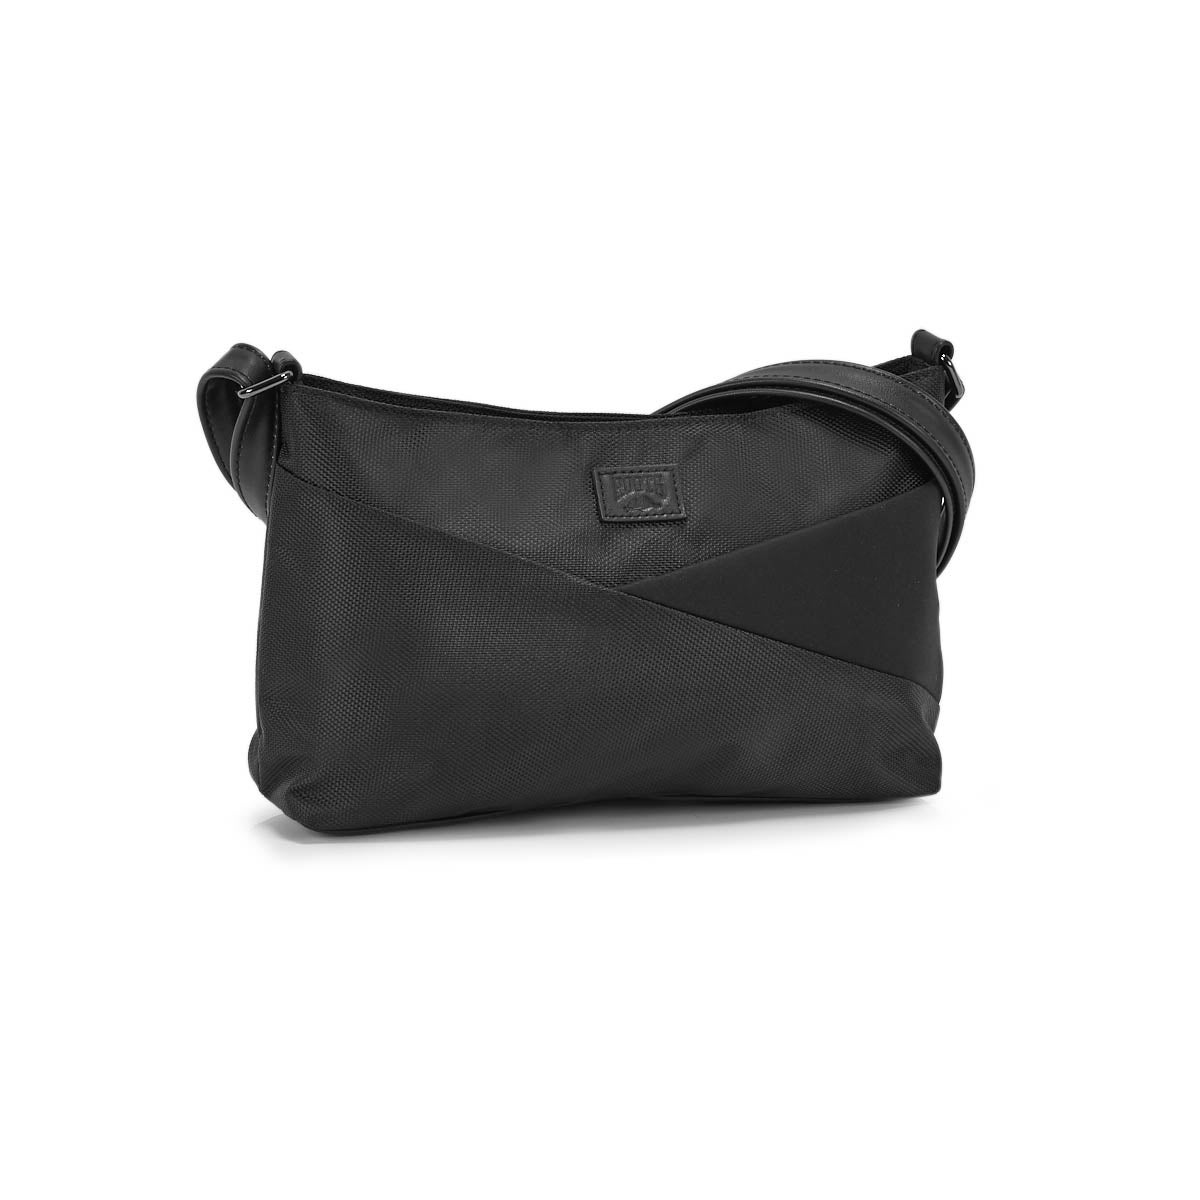 Lds Roots73 blk east/west crossbody bag